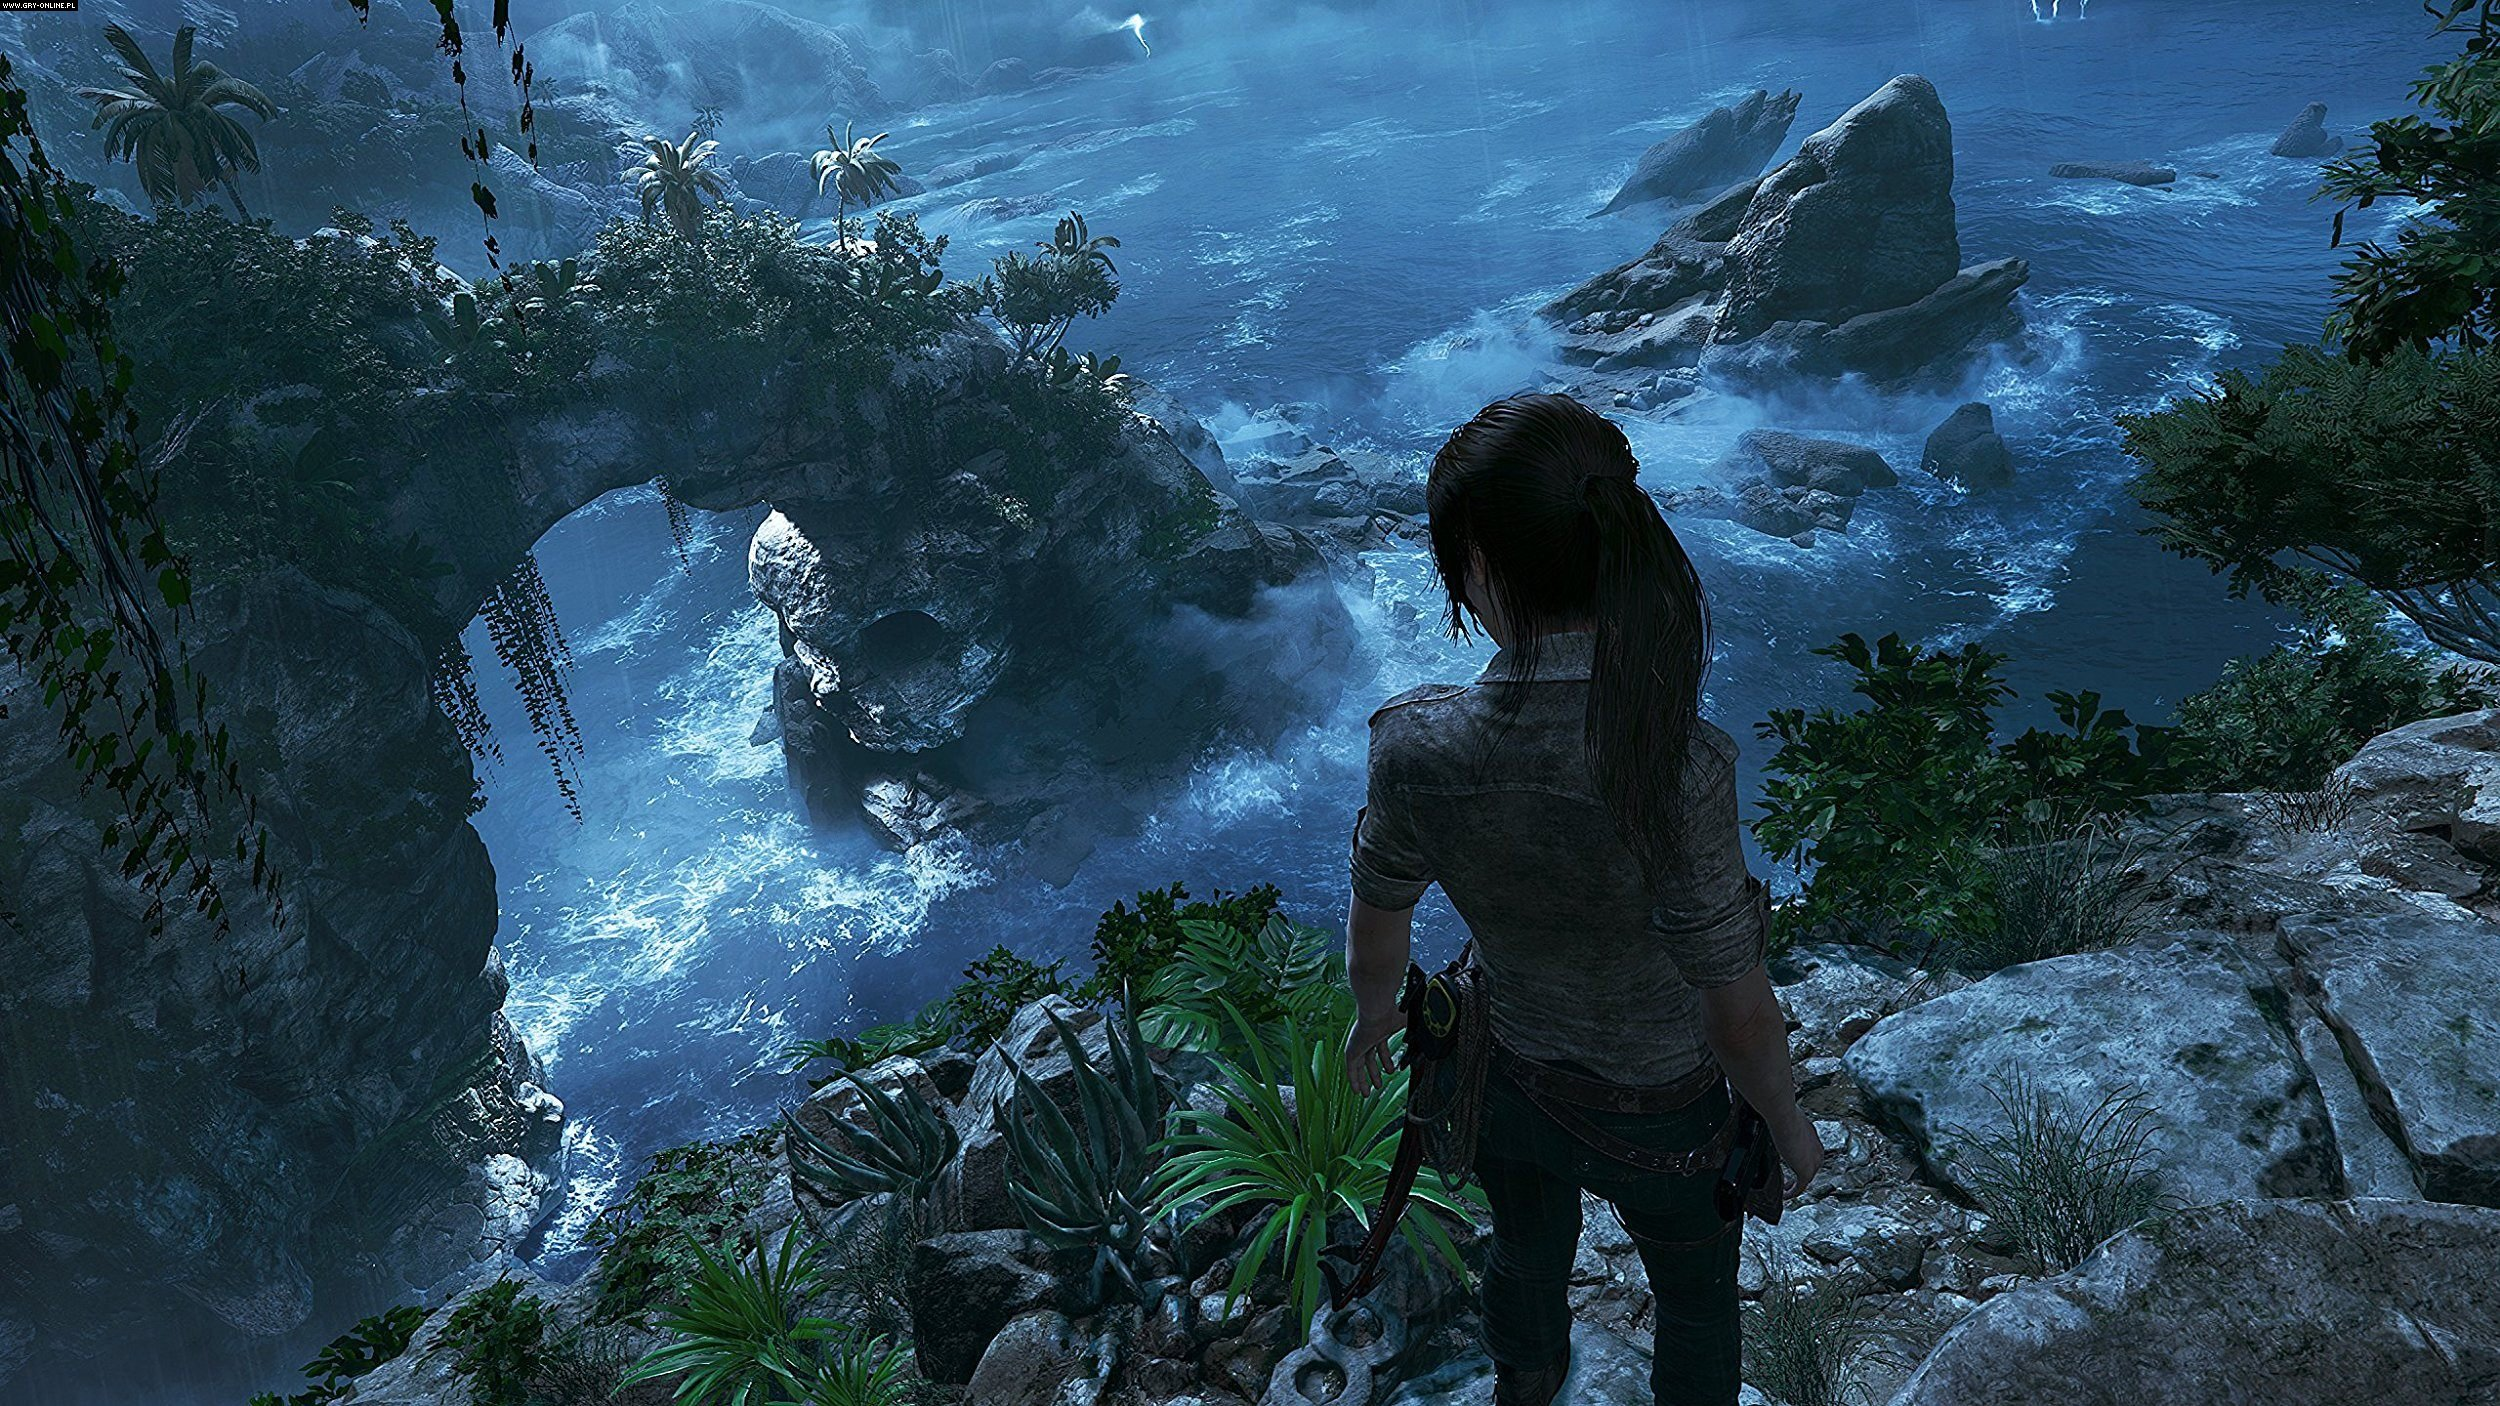 Shadow of the Tomb Raider PC, PS4, XONE Games Image 19/20, Nixxes Software, Square-Enix / Eidos